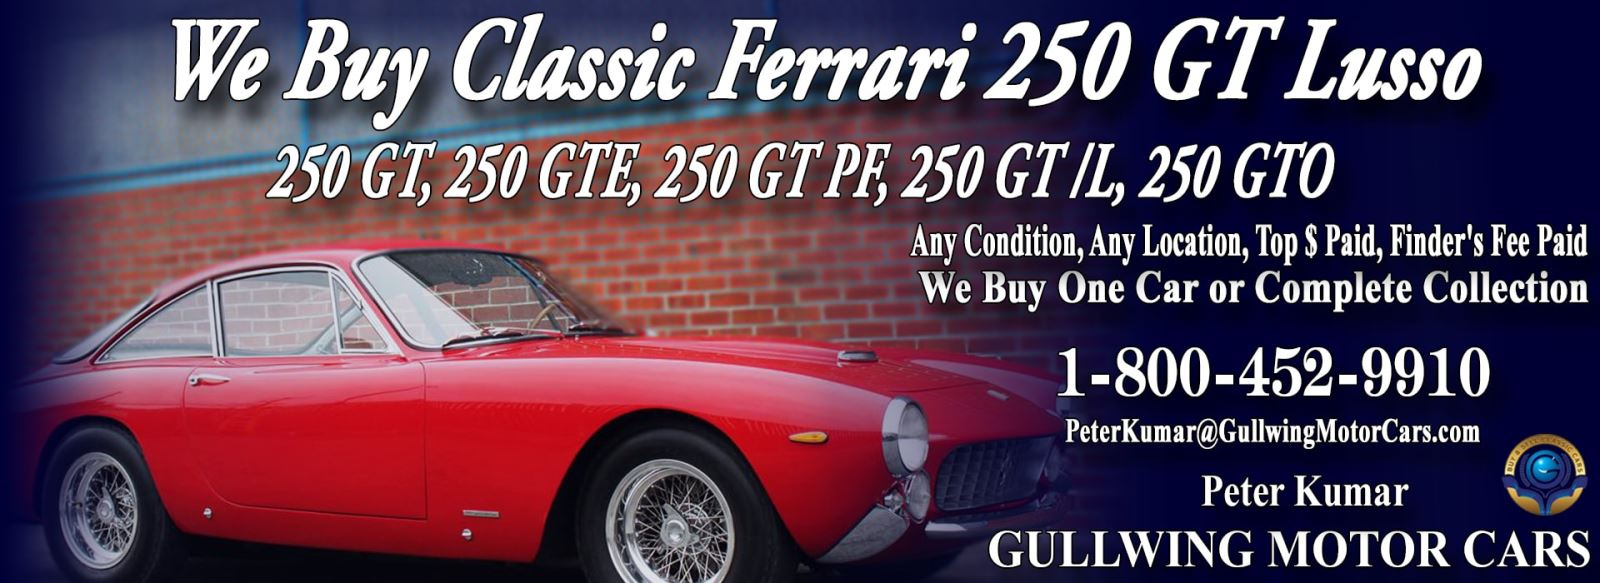 Classic Ferrari 250 GT Lusso for sale, we buy vintage Ferrari 250GT Lusso. Call Peter Kumar. Gullwing Motor